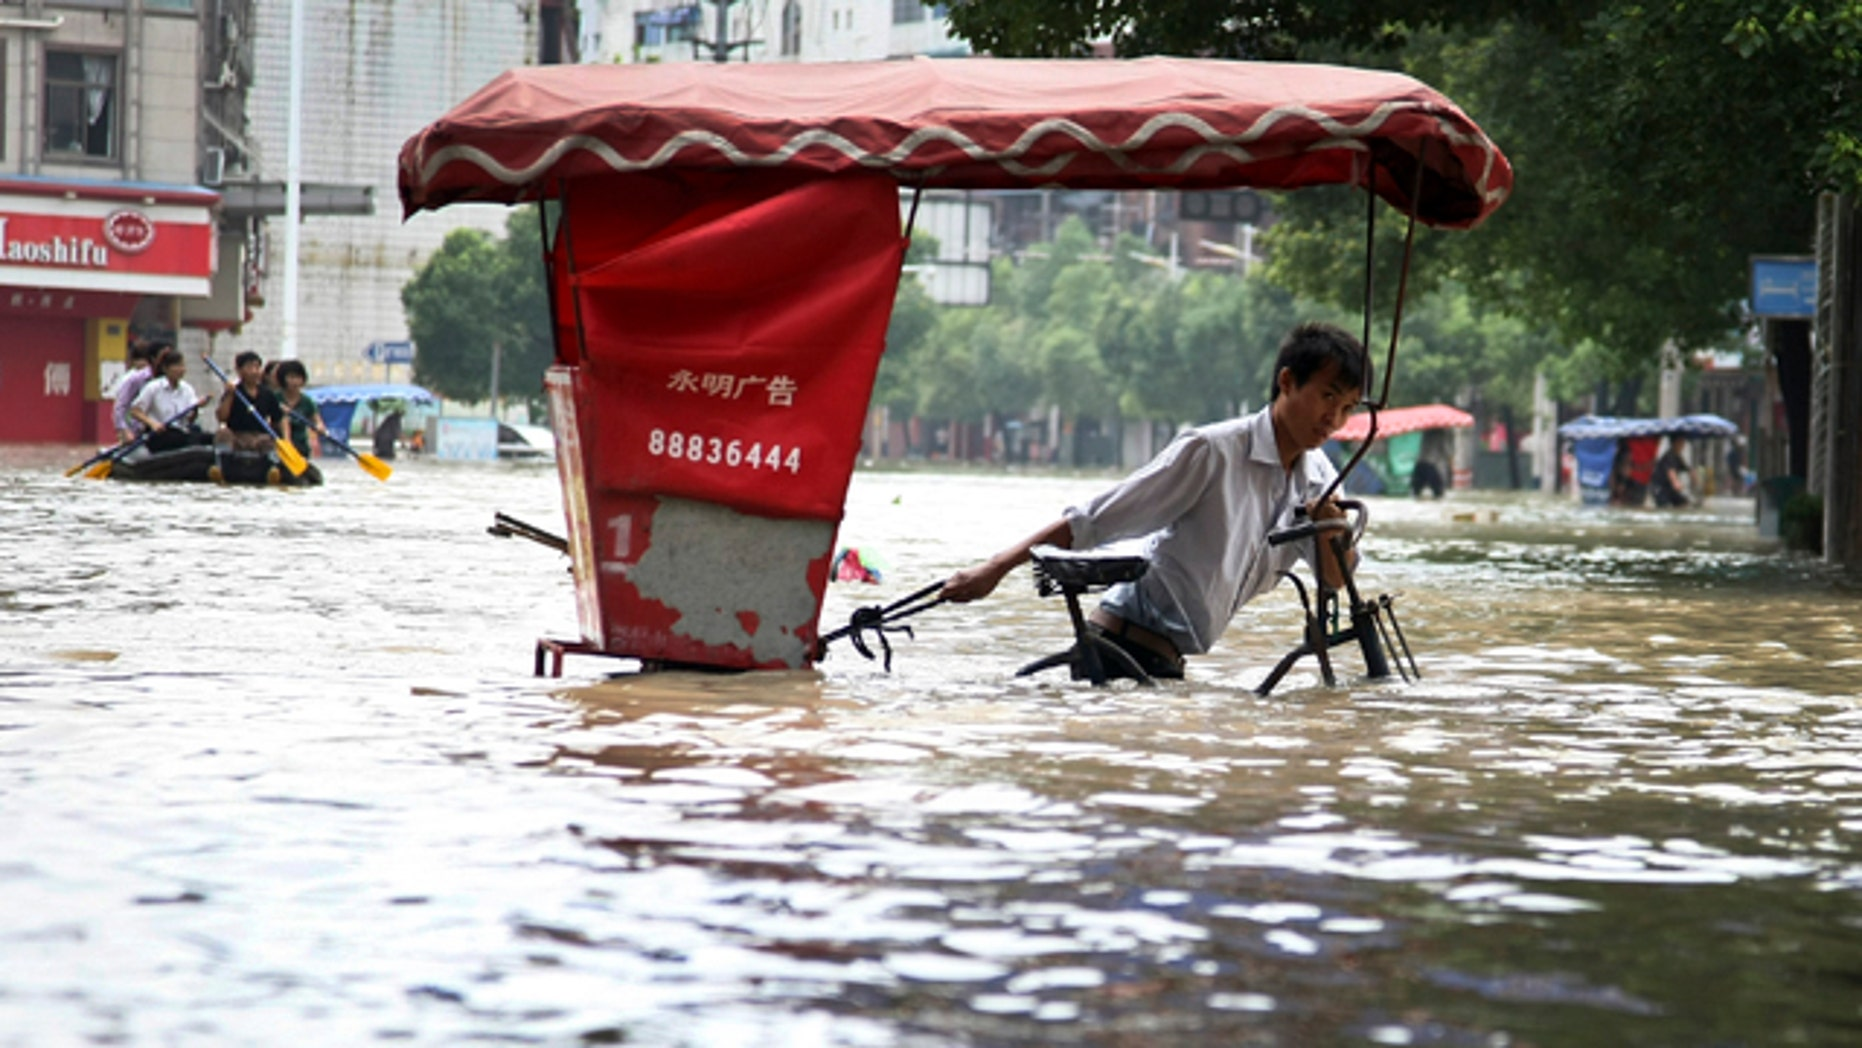 June 20: A Chinese man wades through a flooded street with his tricycle in Lanxi city in east China's Zhejiang province. Heavy rains pounded Zhejiang province over the weekend and the level of a river that passes through Lanxi city has risen sharply. (AP)